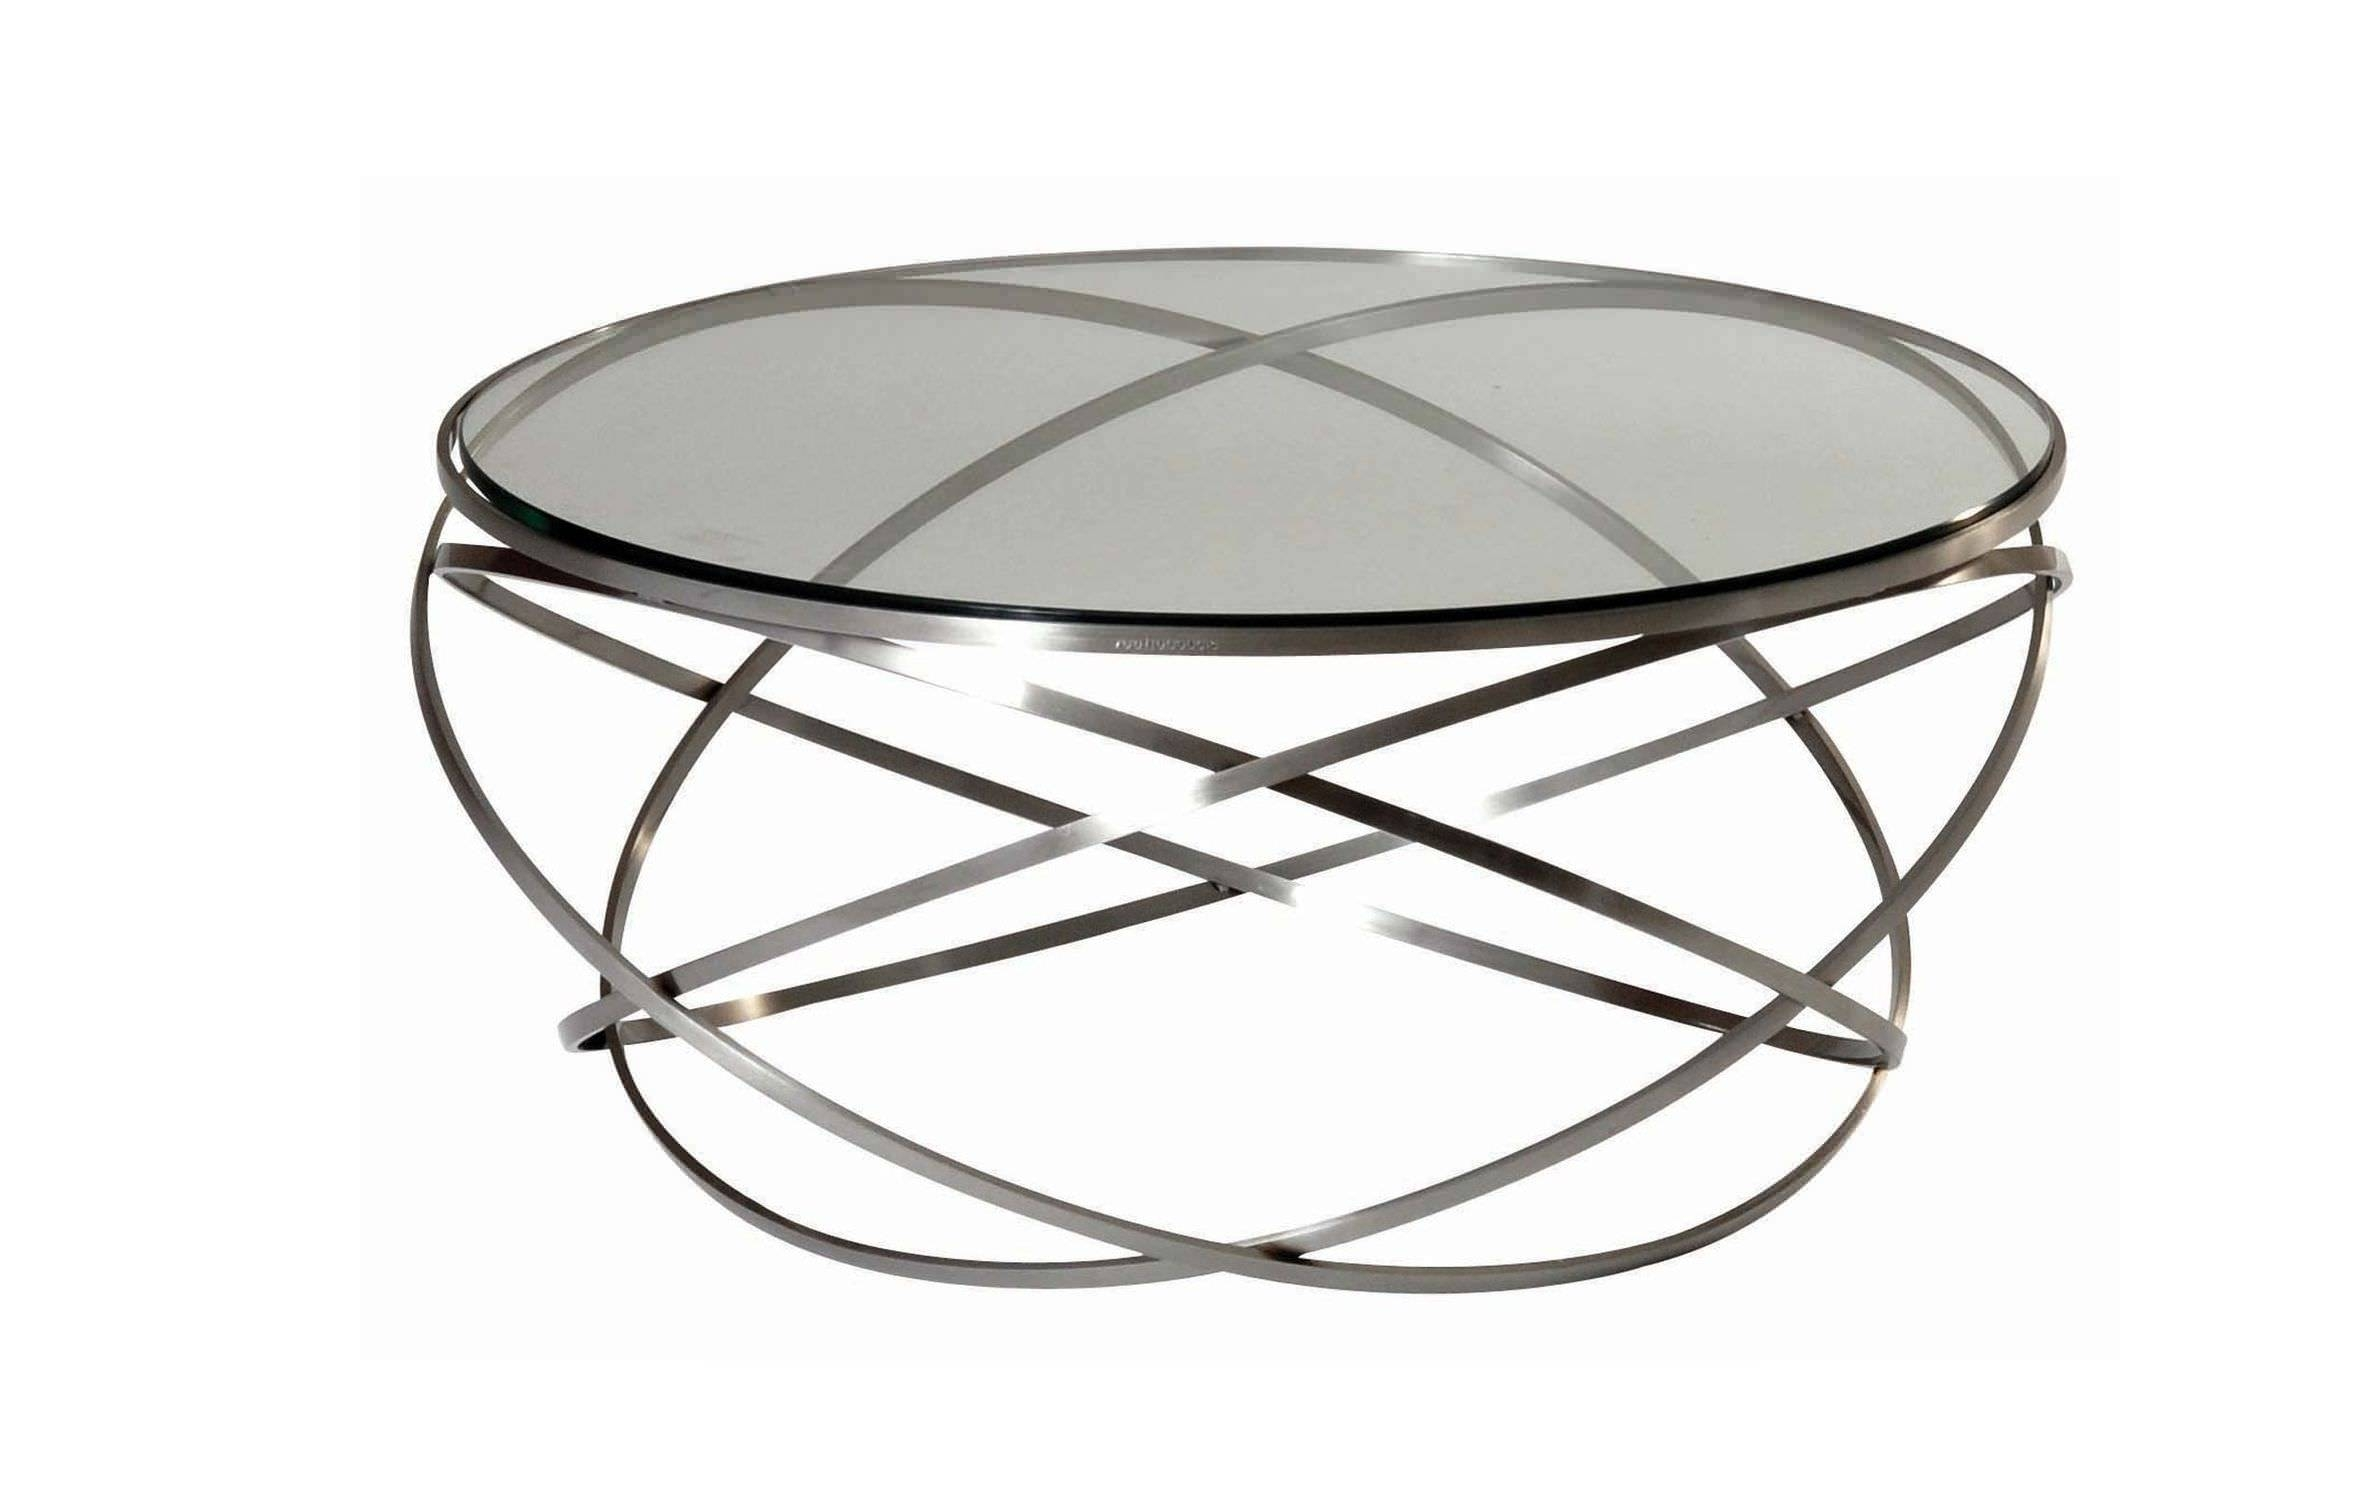 Contemporary Coffee Table / Glass / Steel / Round - Evolcédric inside Glass Steel Coffee Tables (Image 10 of 30)